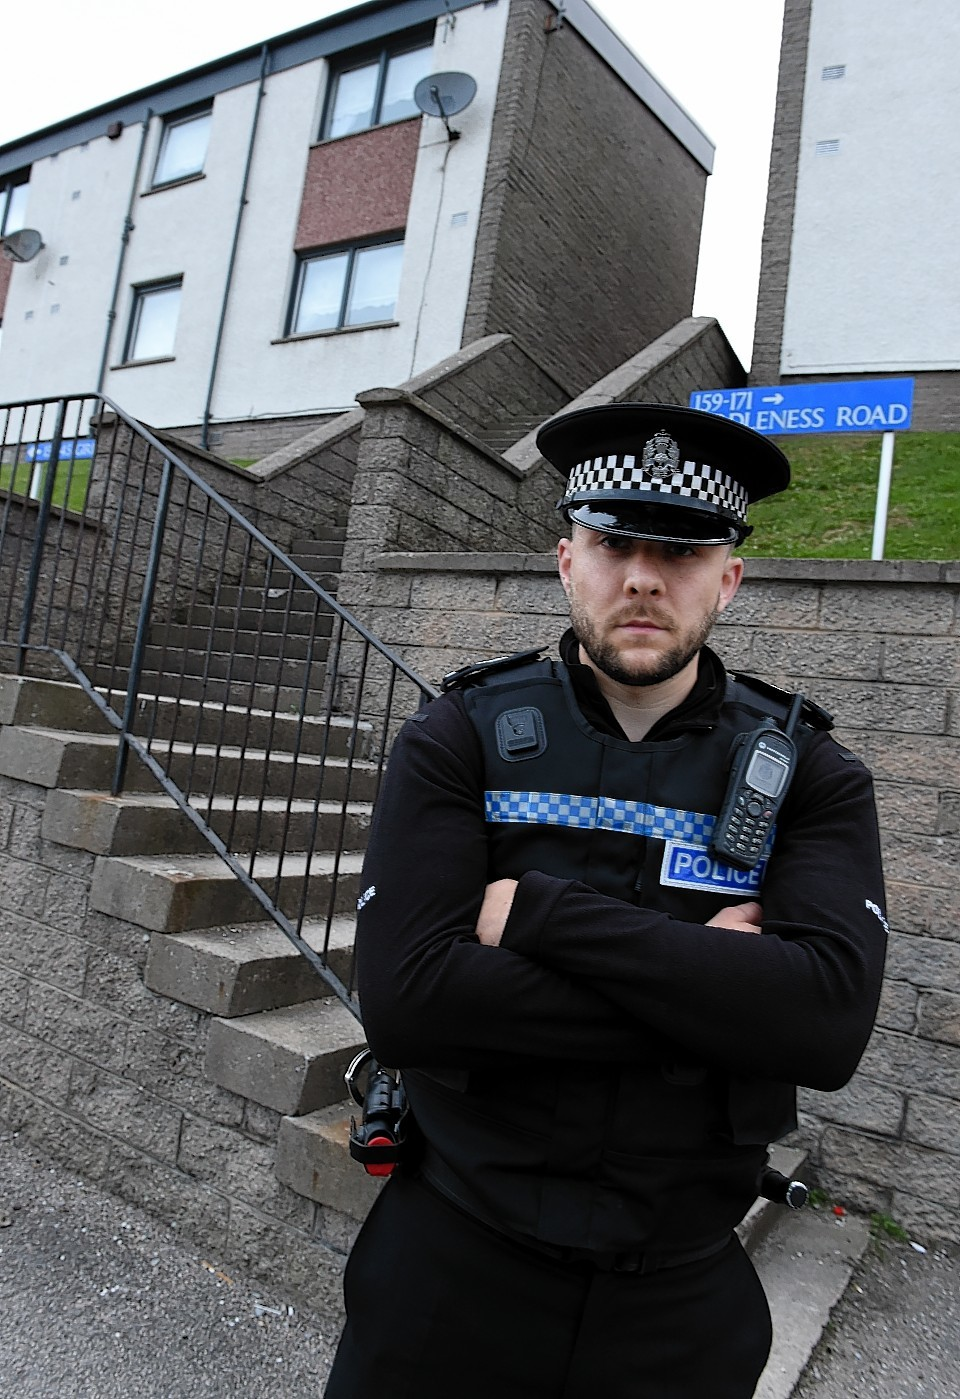 Sergeant Martyn Thomson at the steps where the man fell and the thief struck. Picture by Jim Irvine